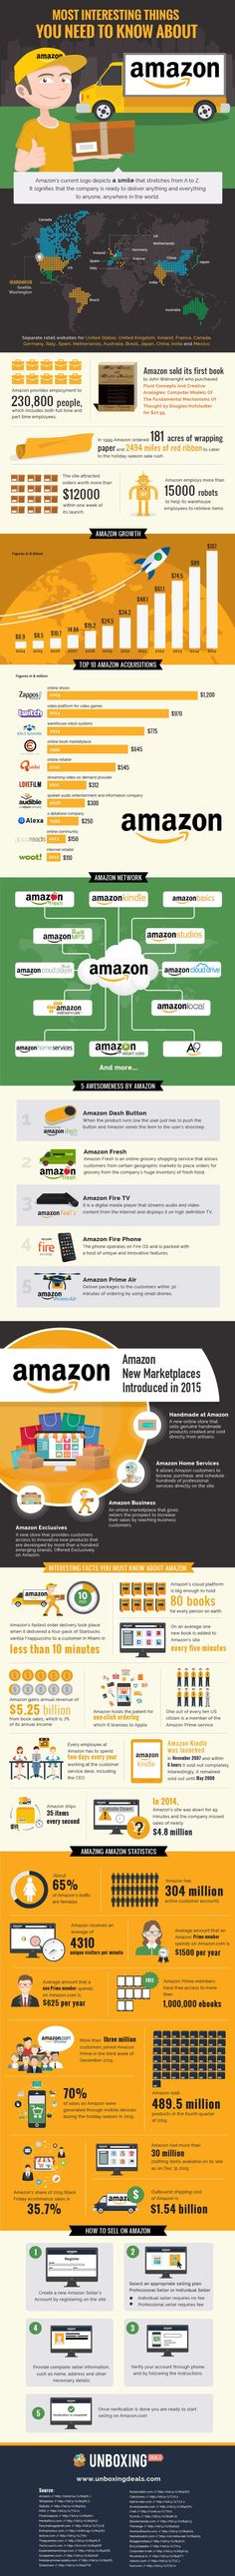 Amazon facts and figures – full infographic